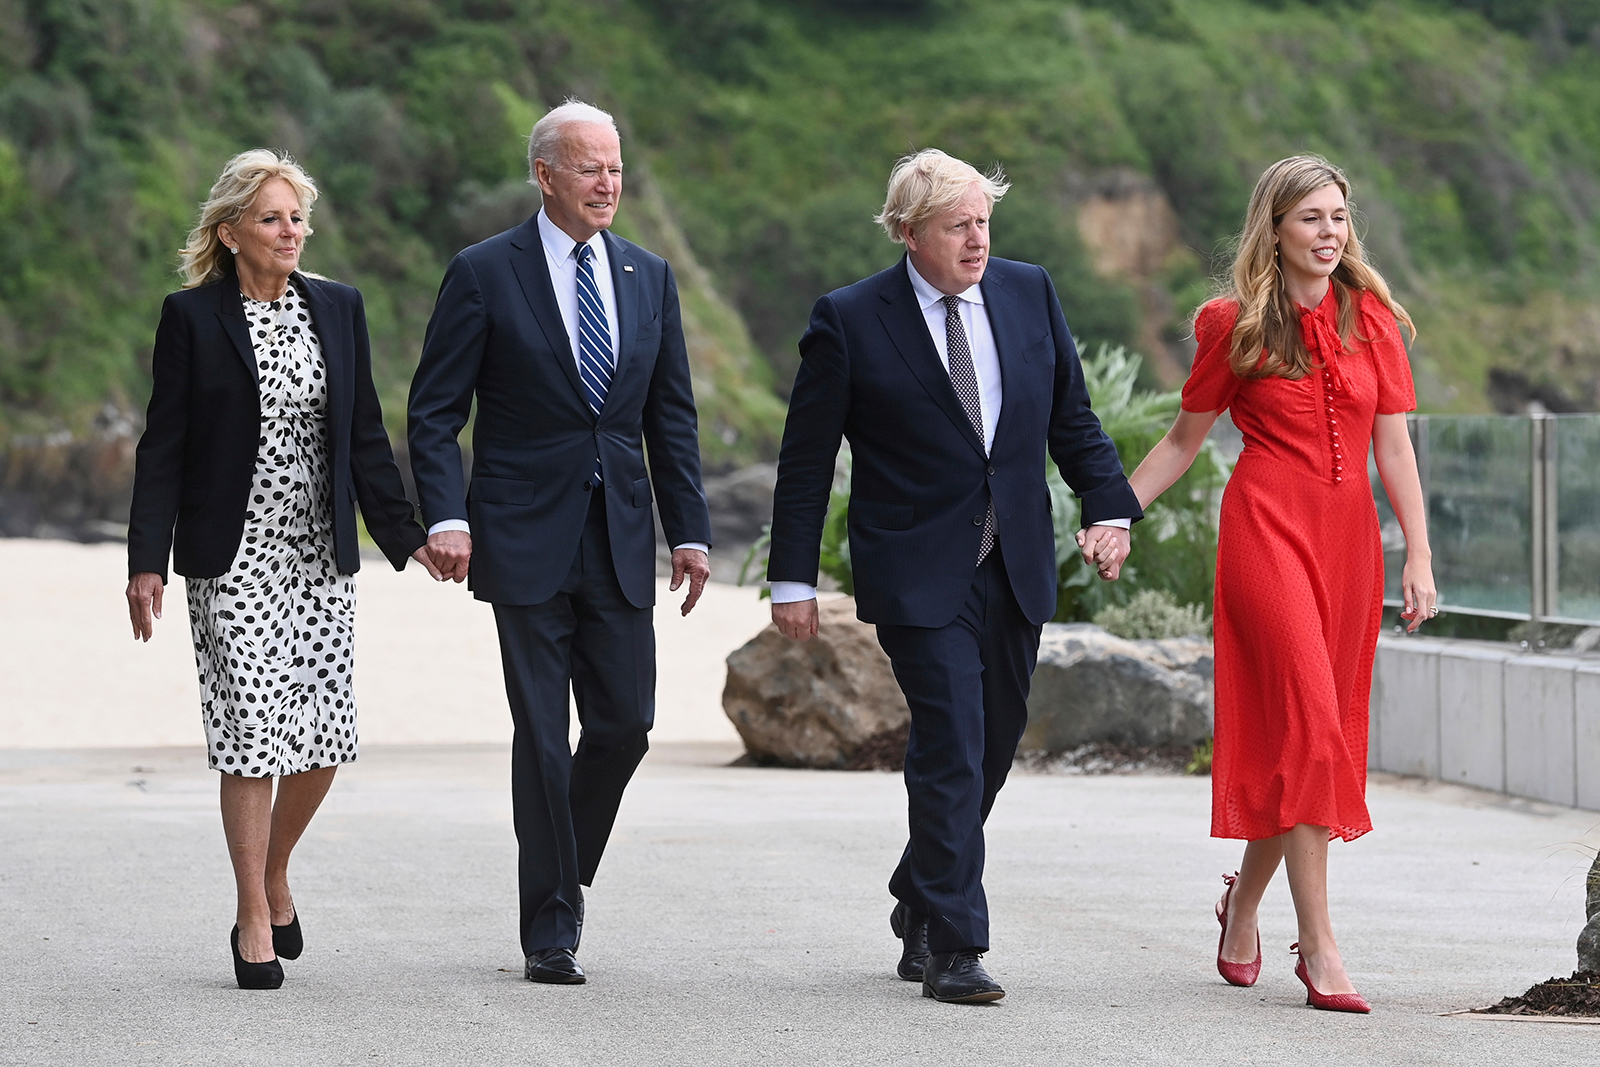 The Johnsons and the Bidens outside Carbis Bay Hotel in Cornwall ahead of the G7 summit on Thursday.